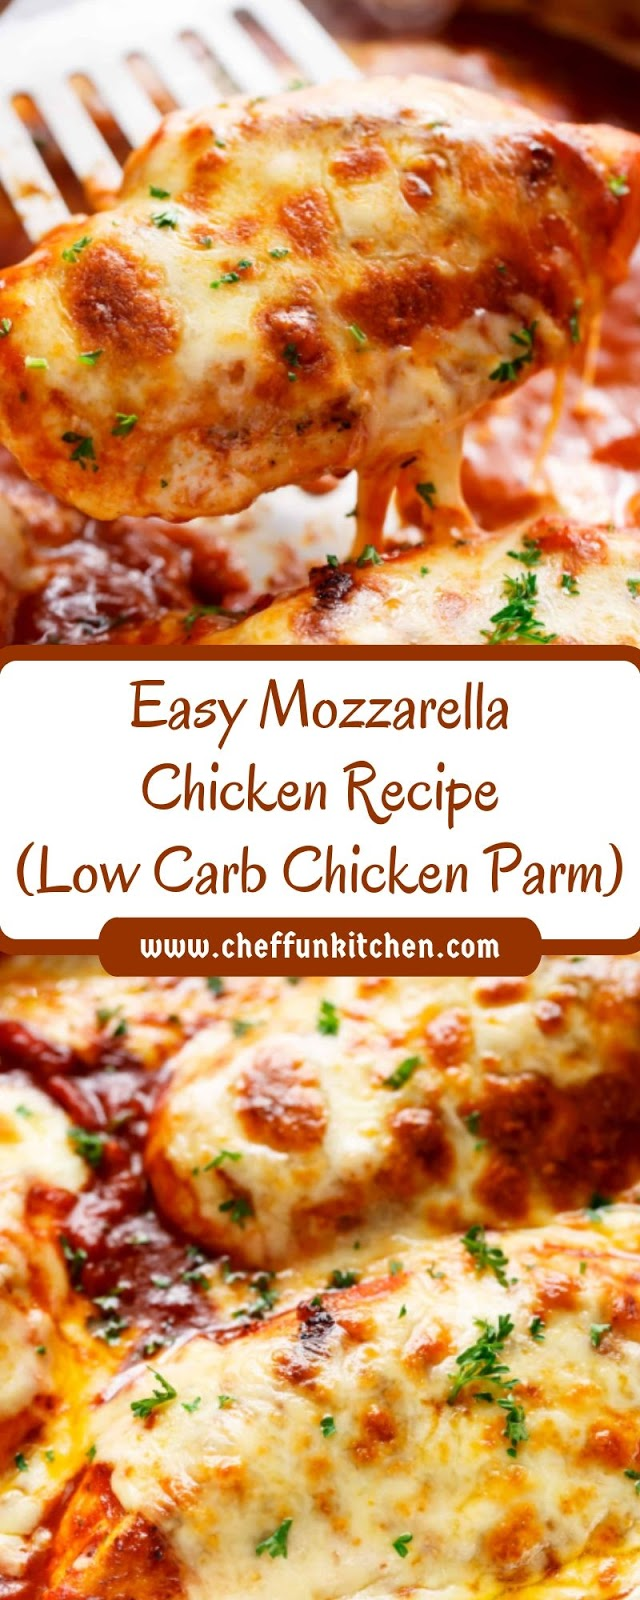 Easy Mozzarella Chicken Recipe (Low Carb Chicken Parm)